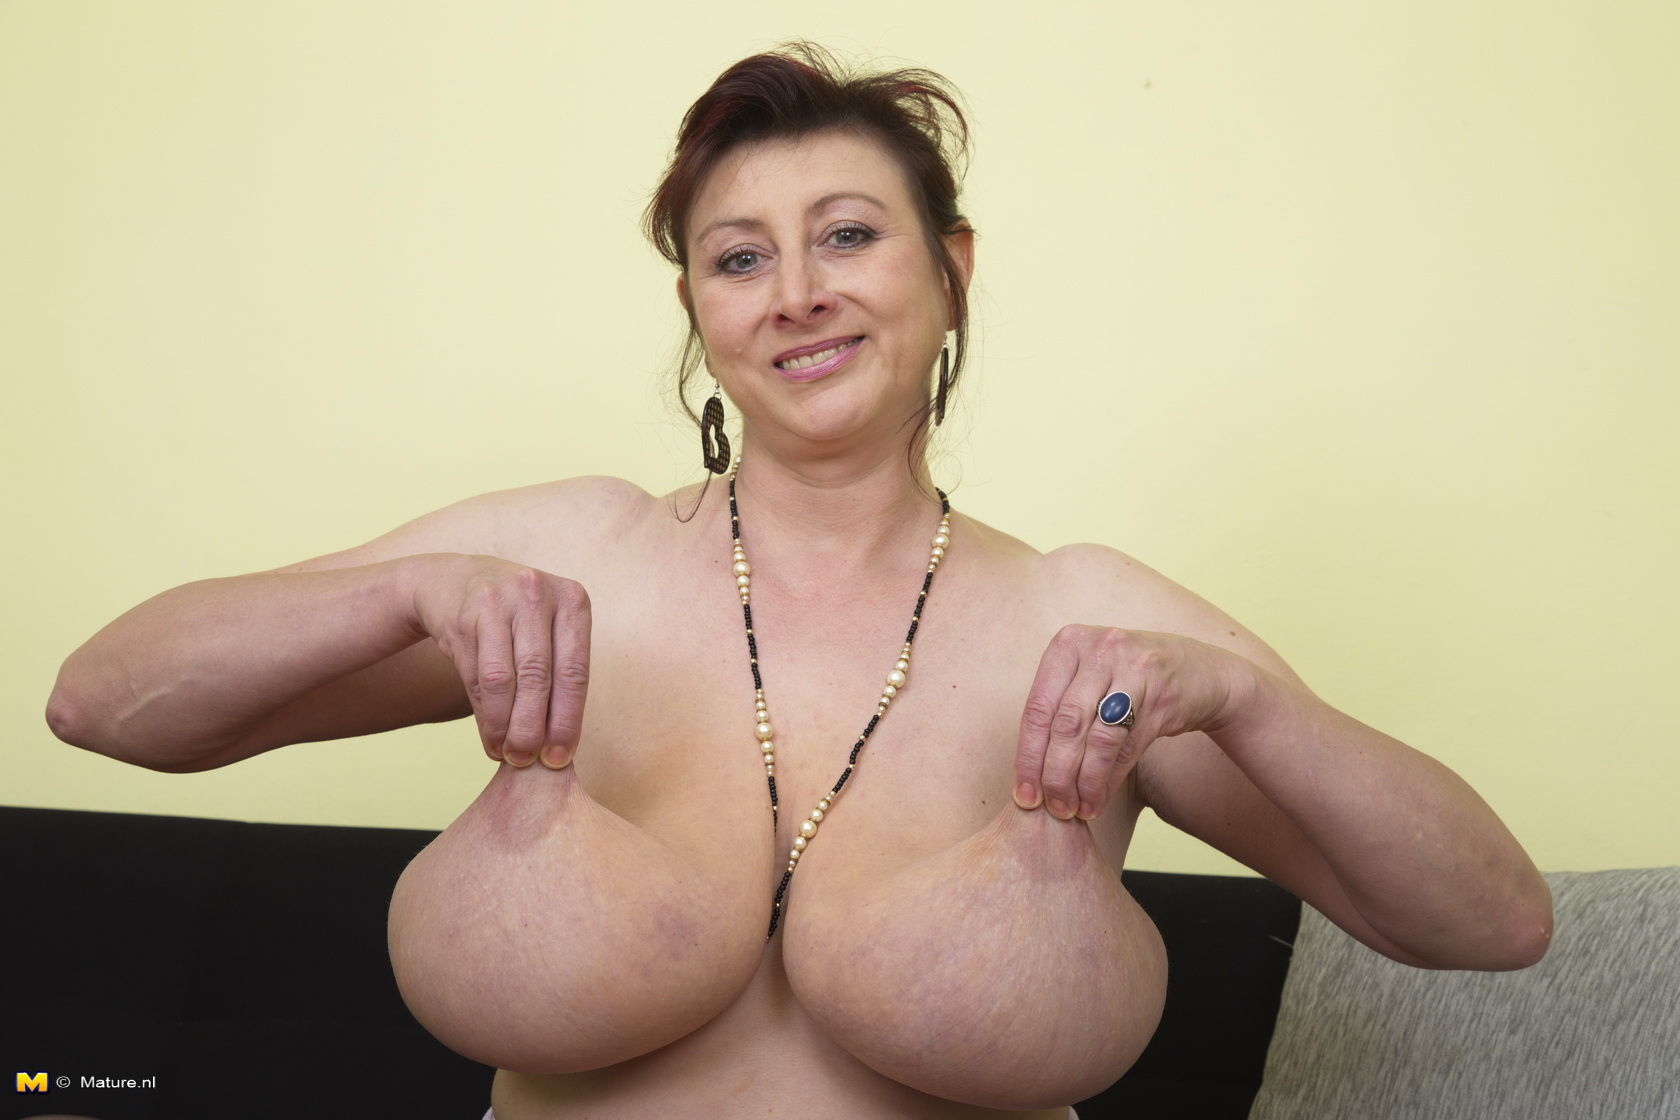 stuff-mature-nude